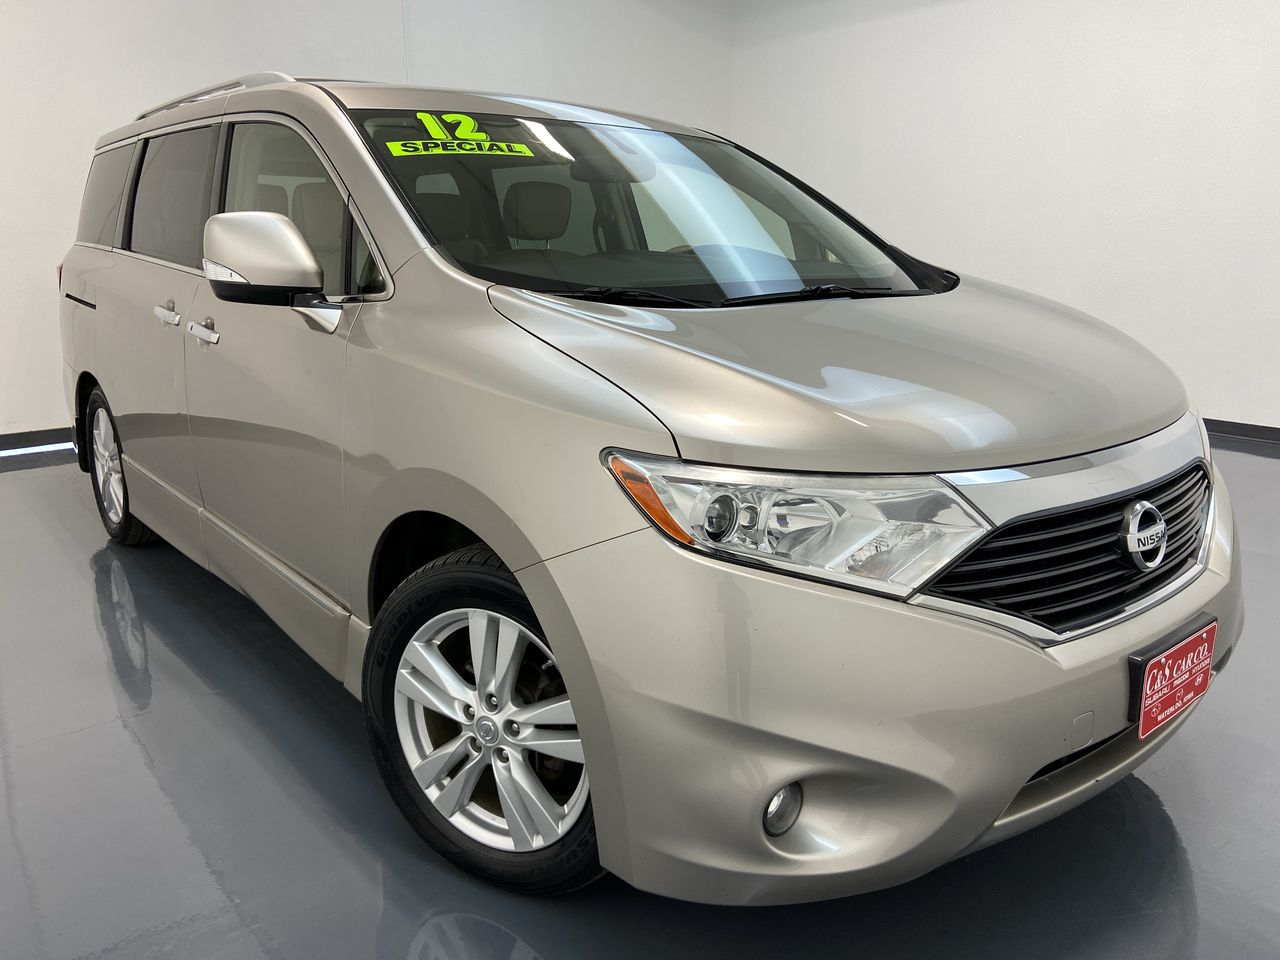 2012 Nissan Quest 4D Wagon  - 16004B  - C & S Car Company